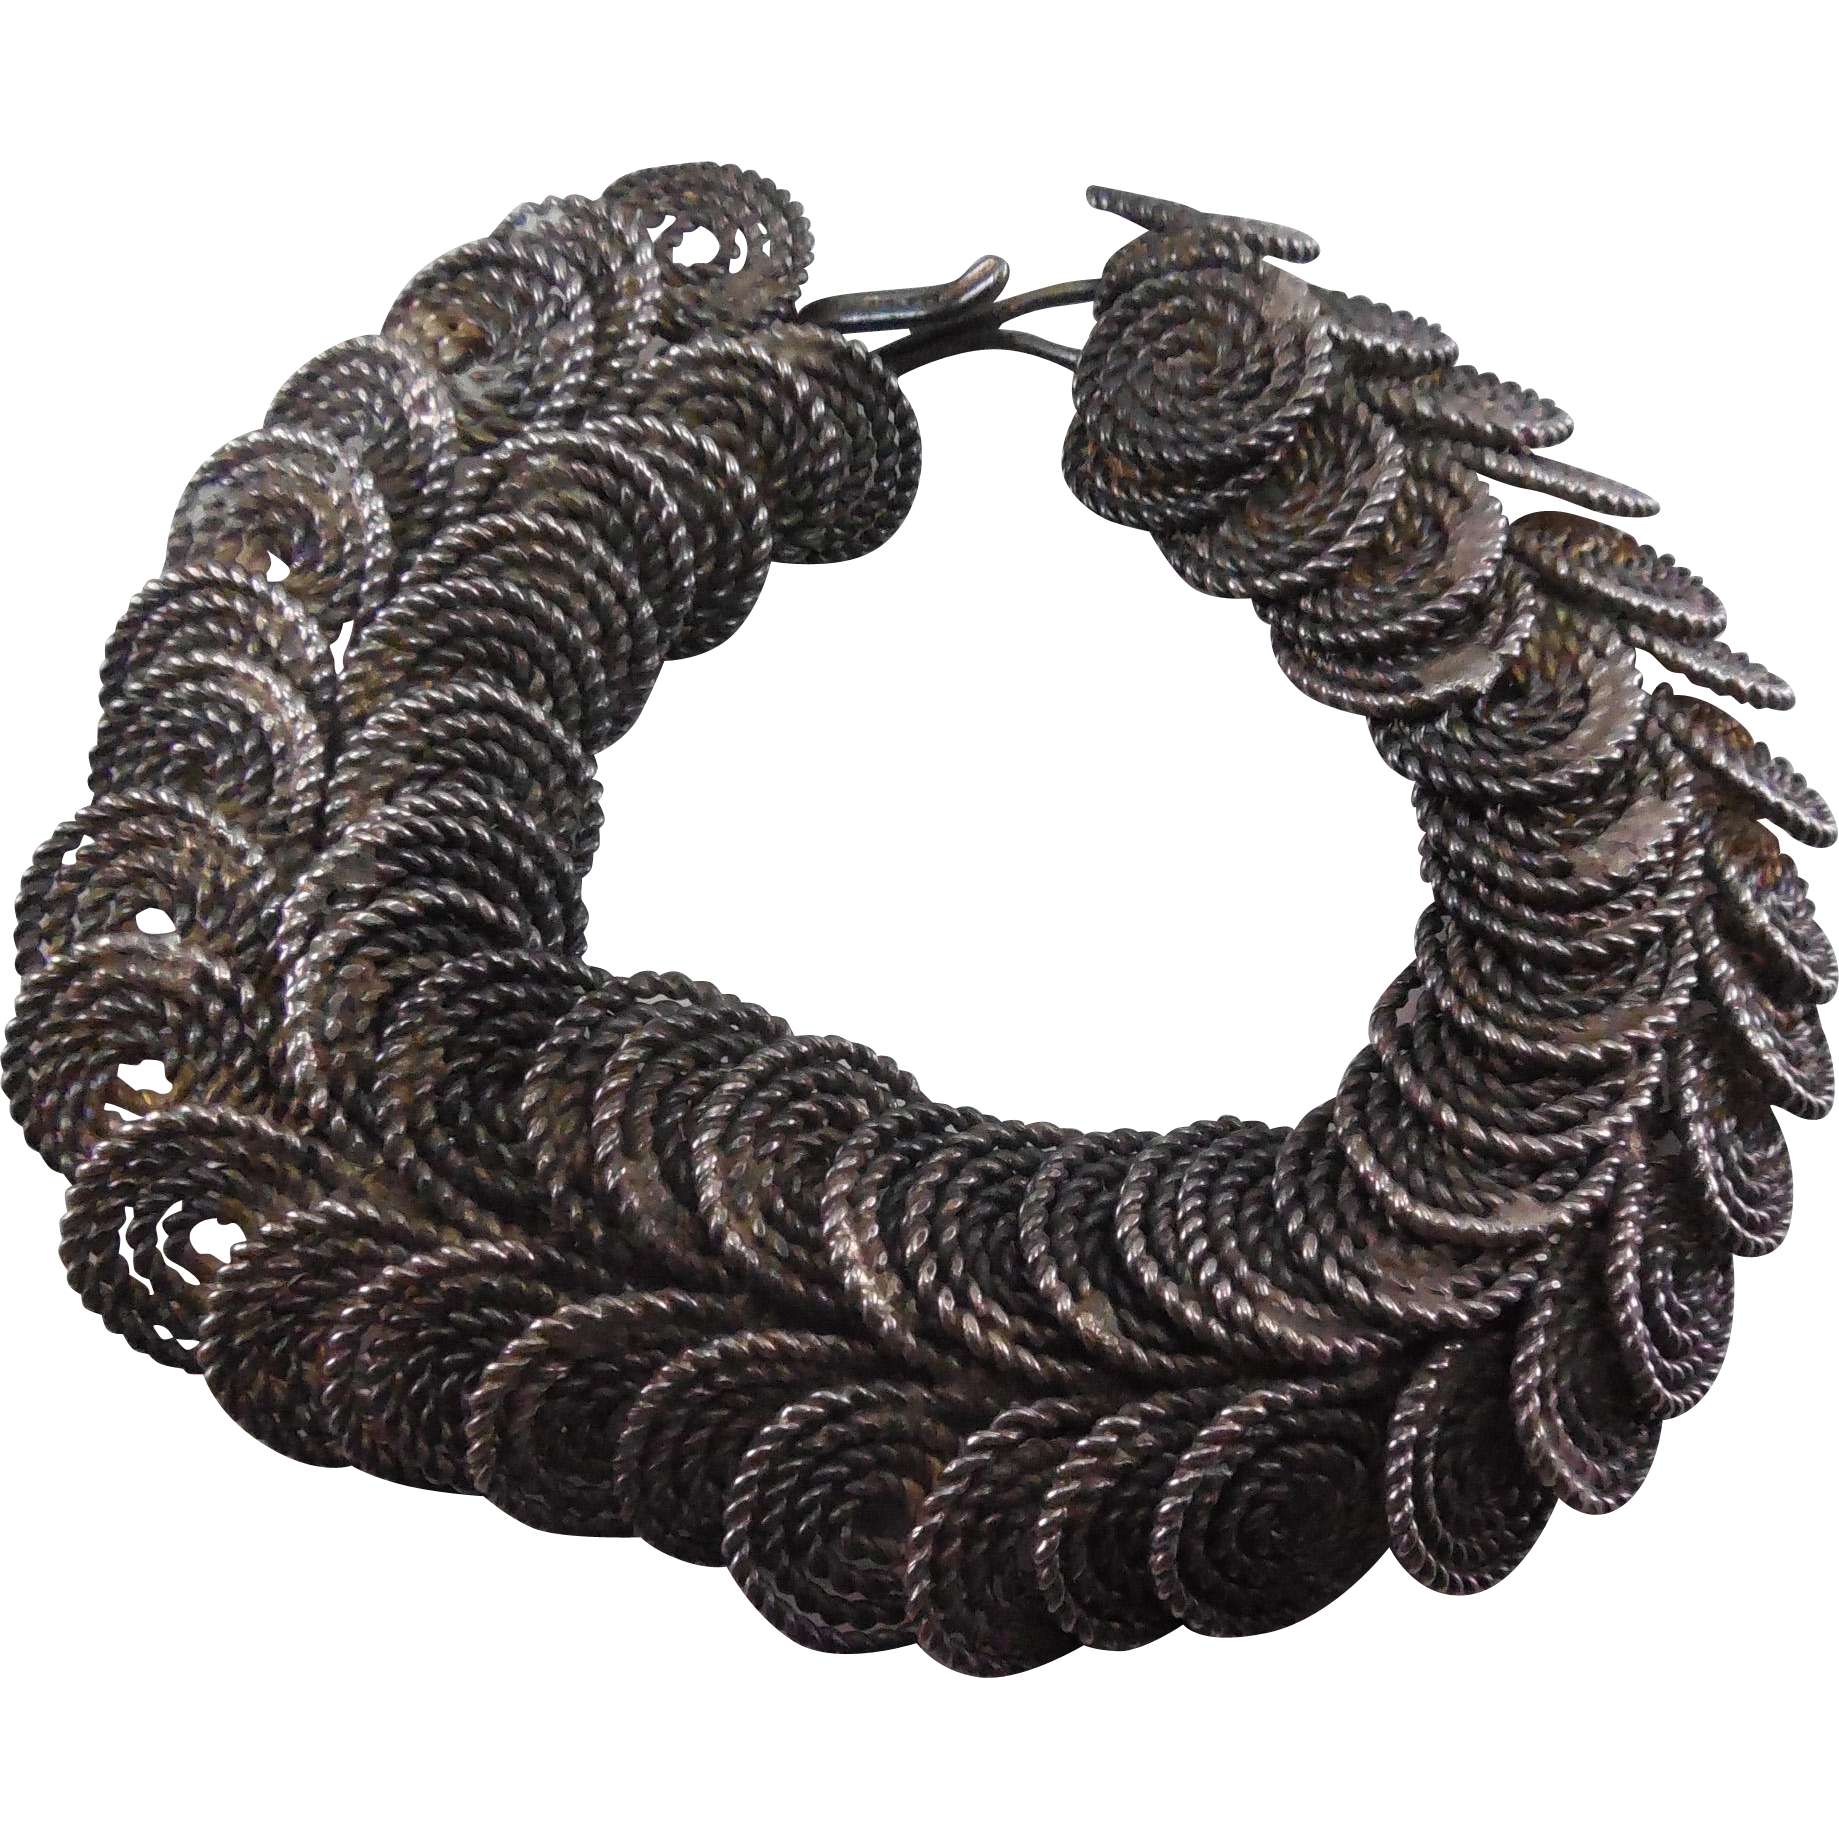 Older Vintage Egyptian Coil Silver Bracelet - Lots of Intricate Work - Nicely Detailed!